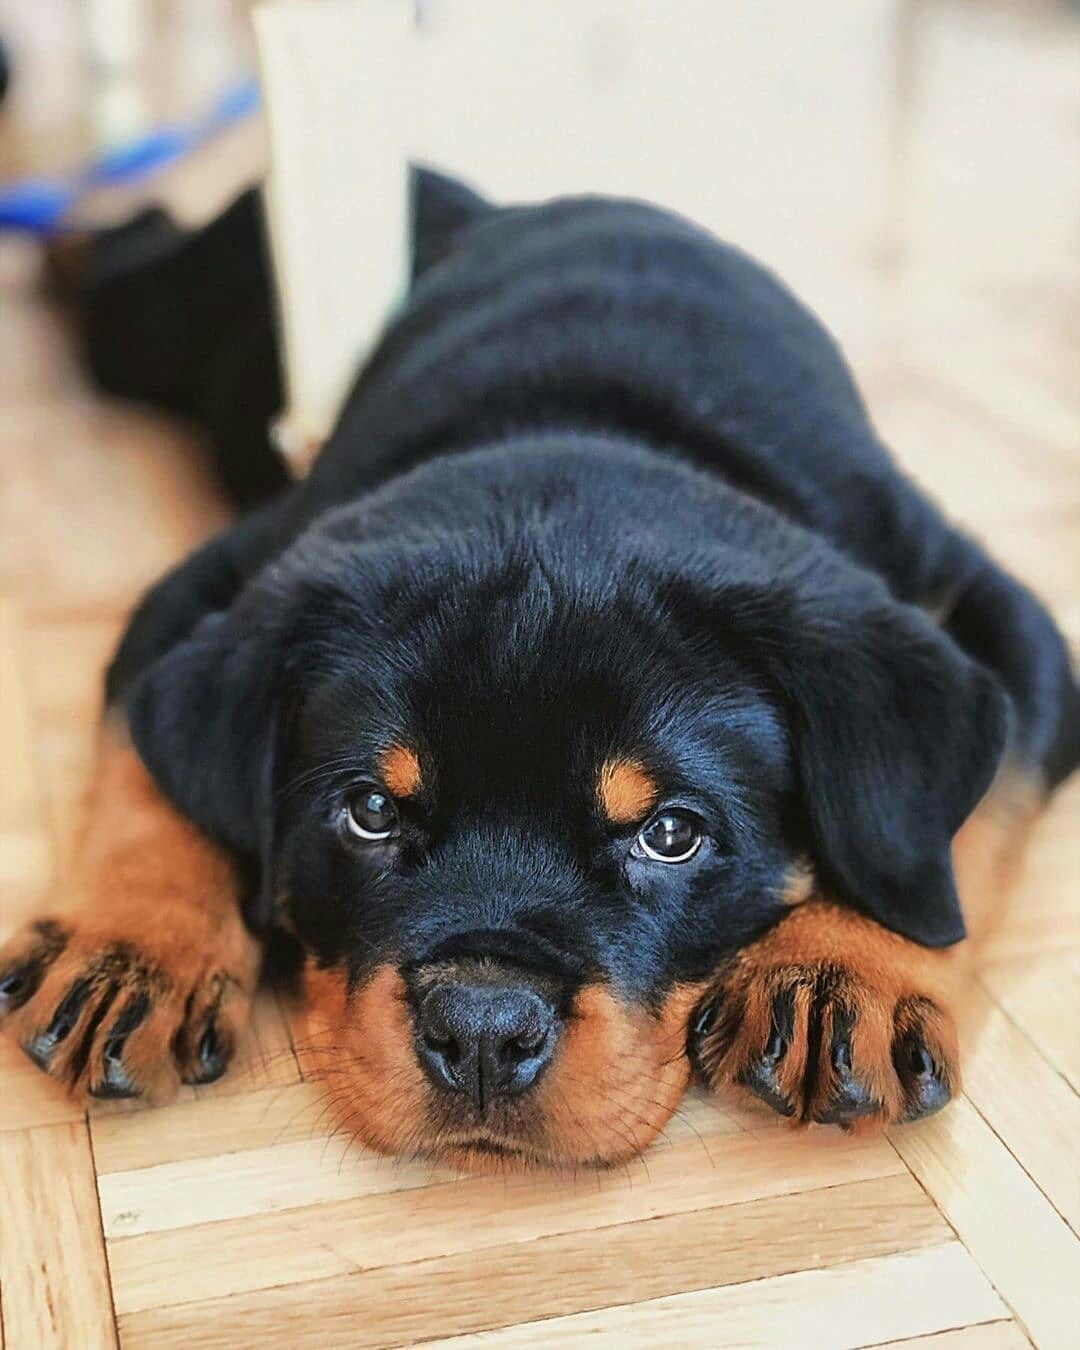 Pin By Jorge Robalino On Hunde In 2020 Rottweiler Puppies Rottweiler Pictures Rottweiler Love